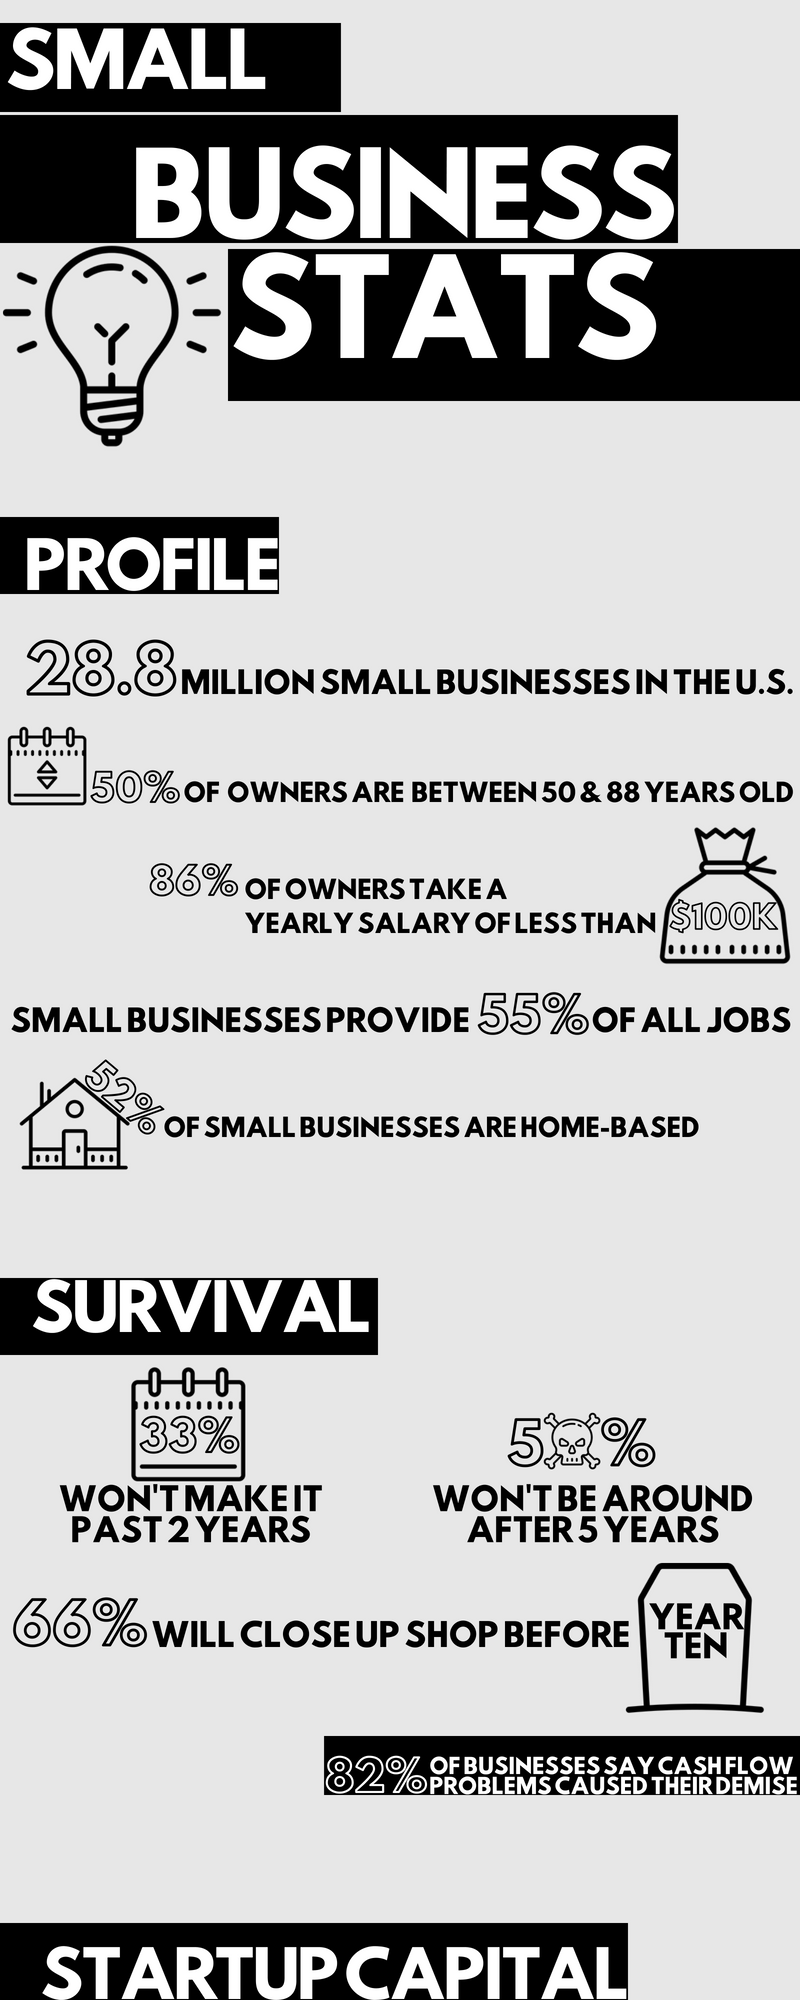 Small Business Stats (1)